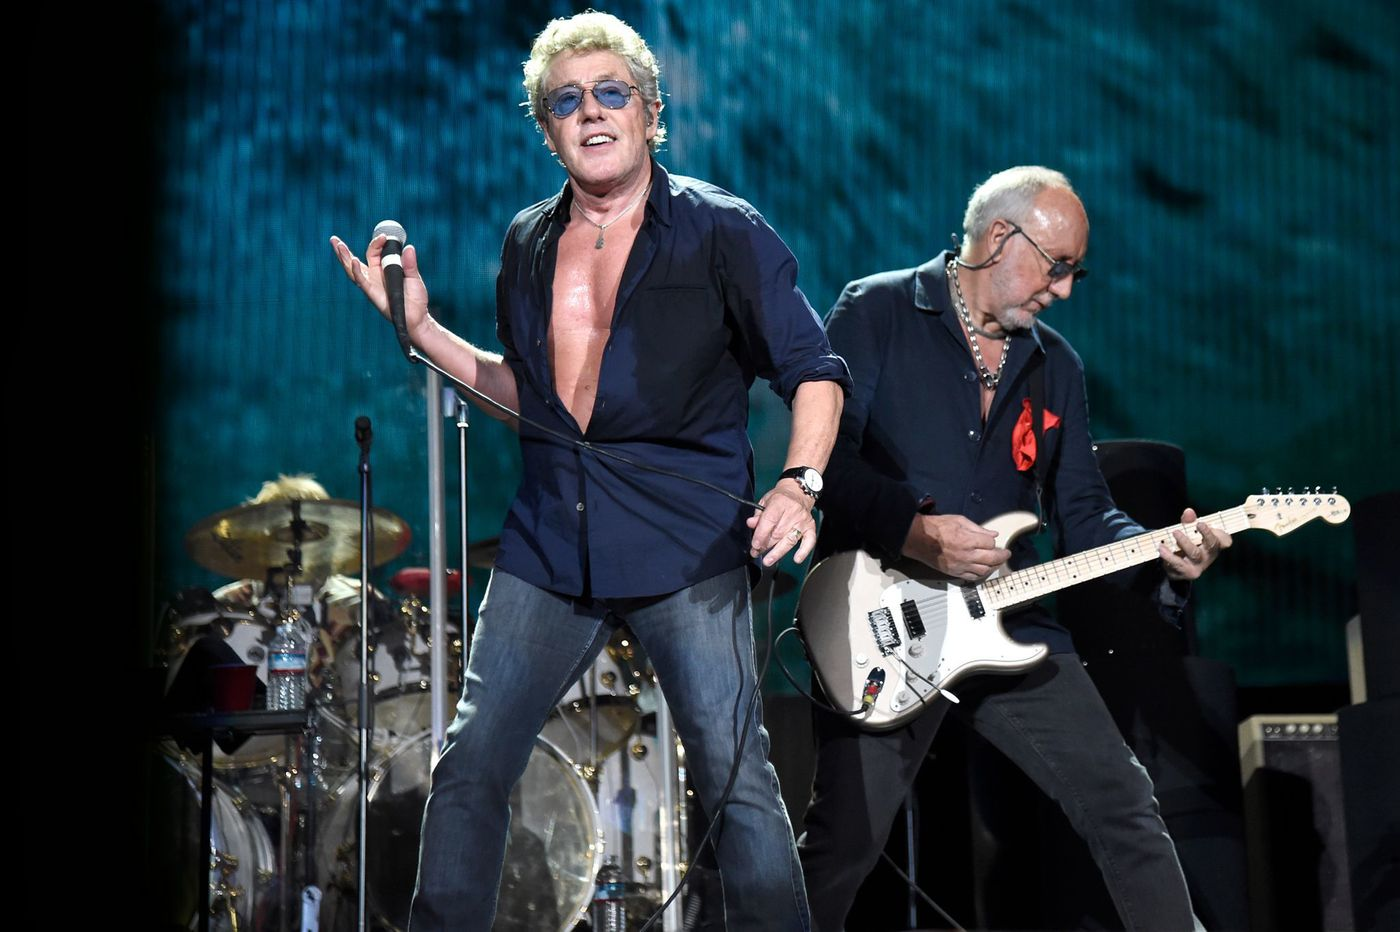 The Who was my first favorite band. I'm seeing them one more time at Citizens Bank Park